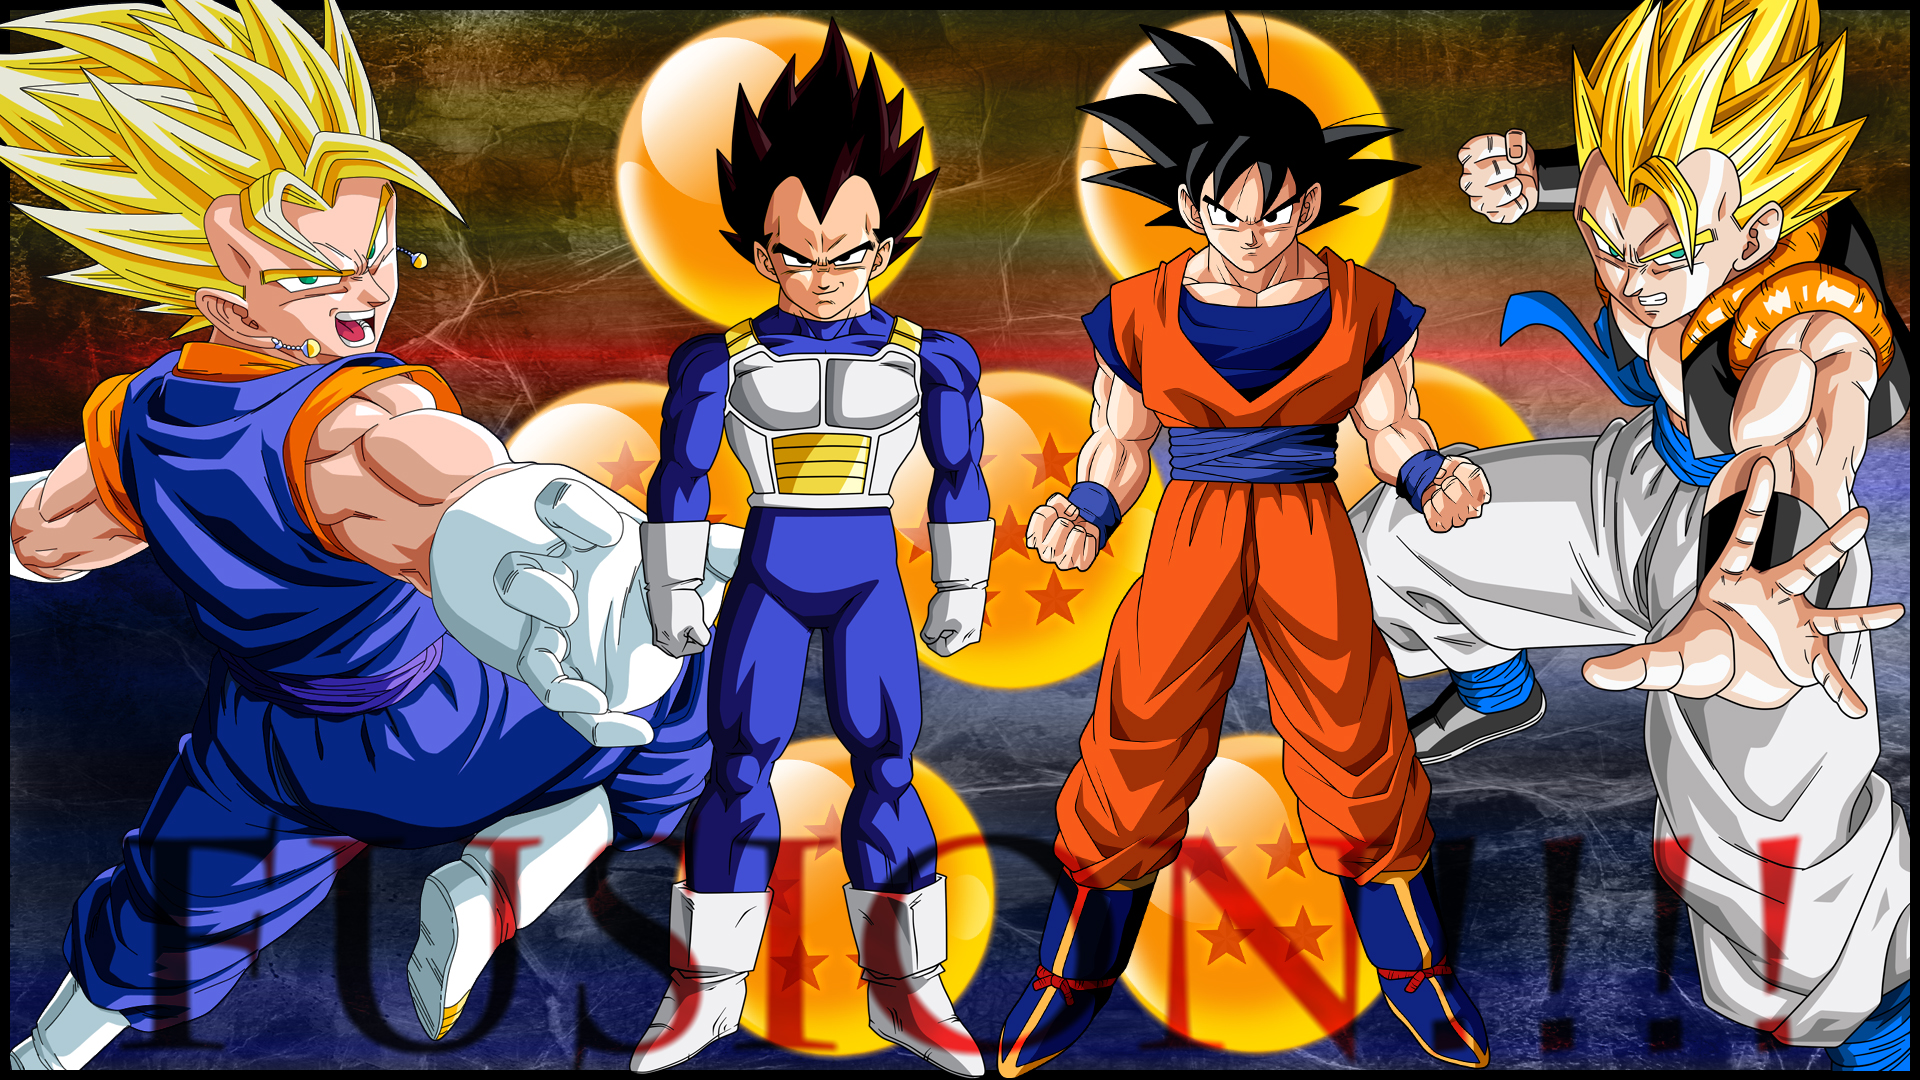 dbz wallpaper 1920x1080 59367